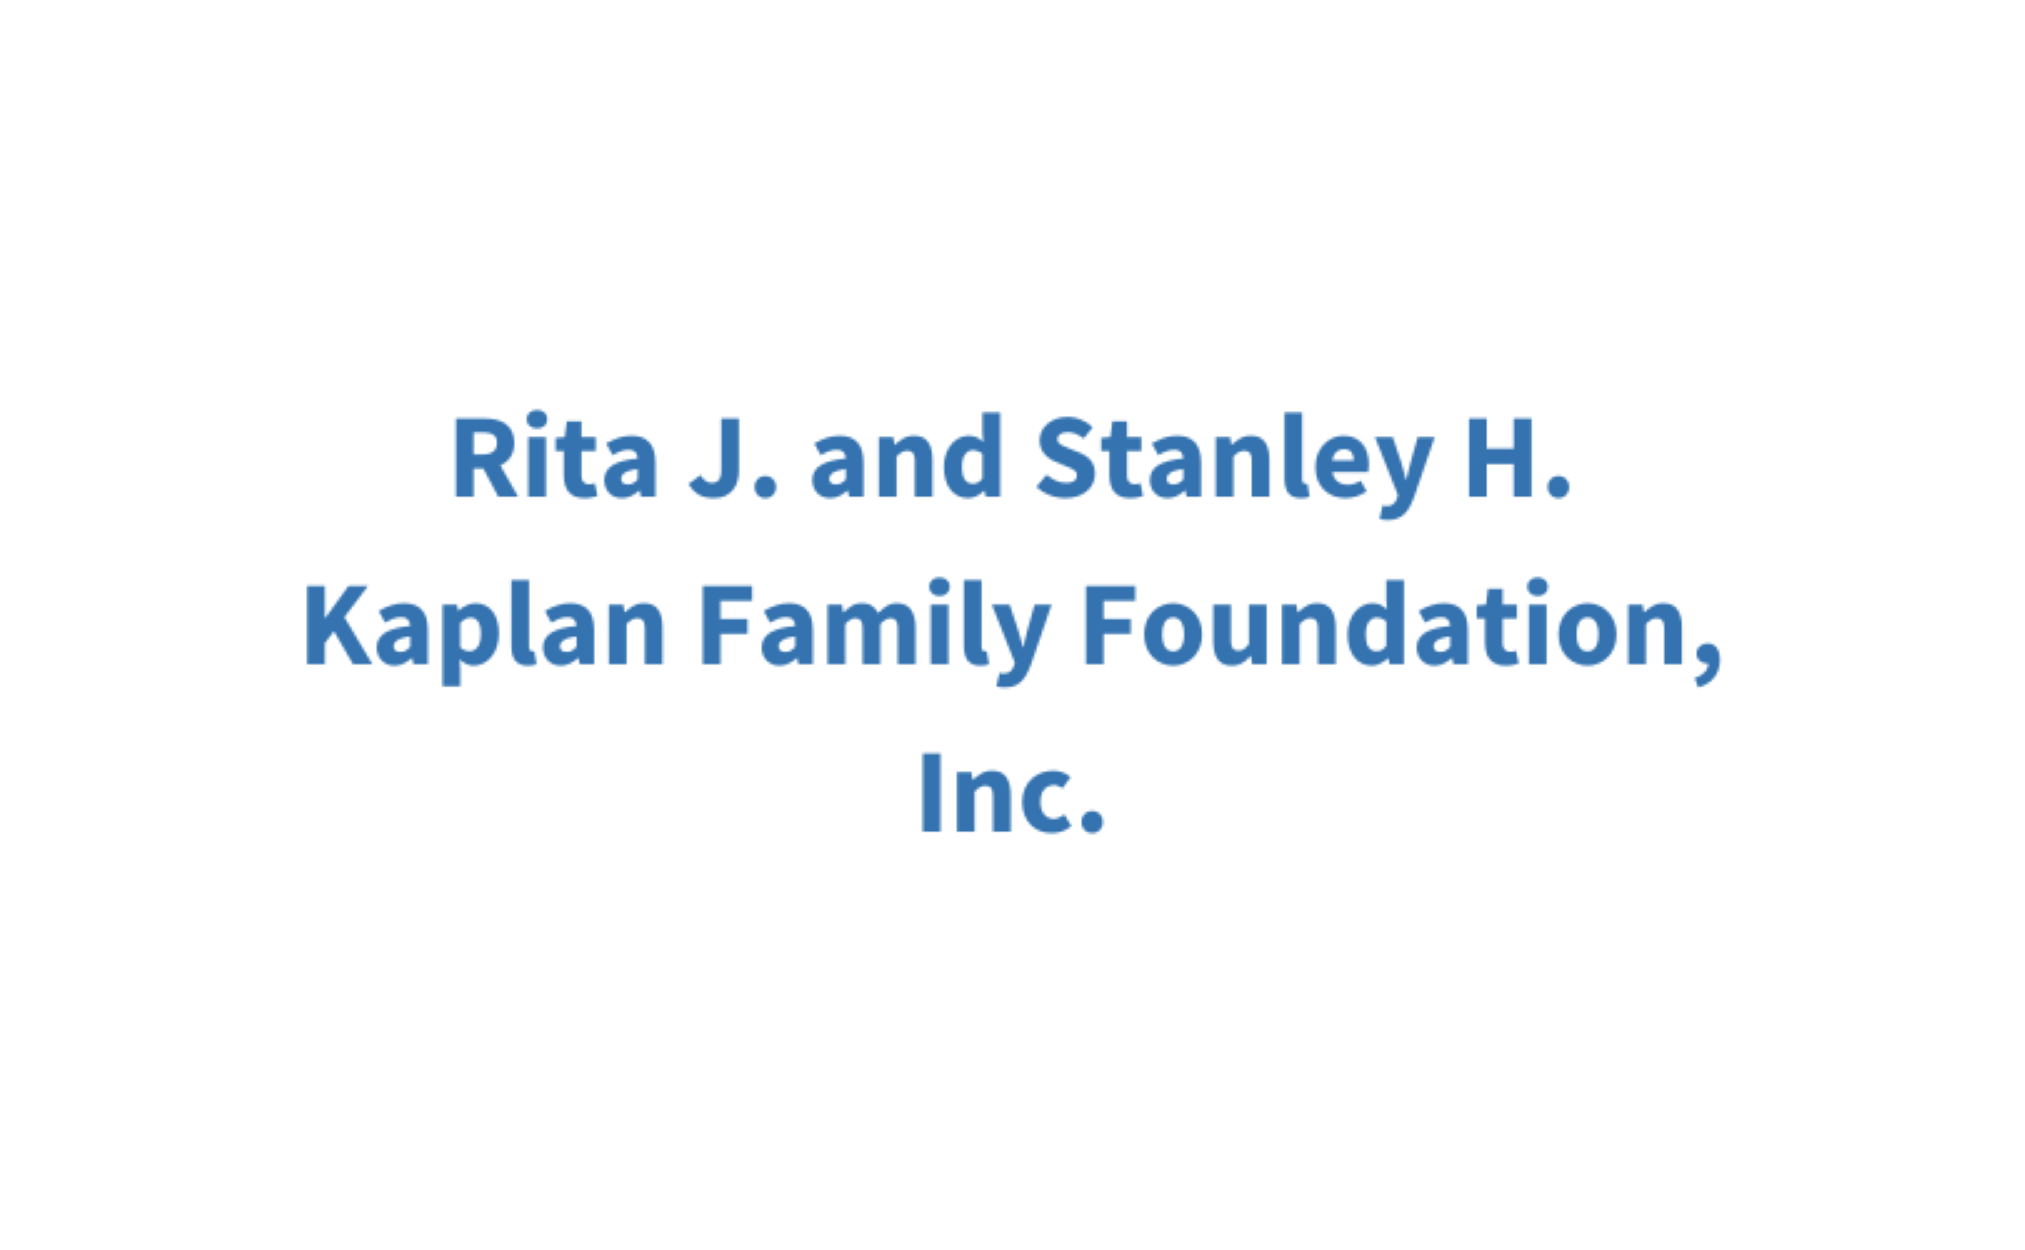 Kaplan Family Foundation, Inc